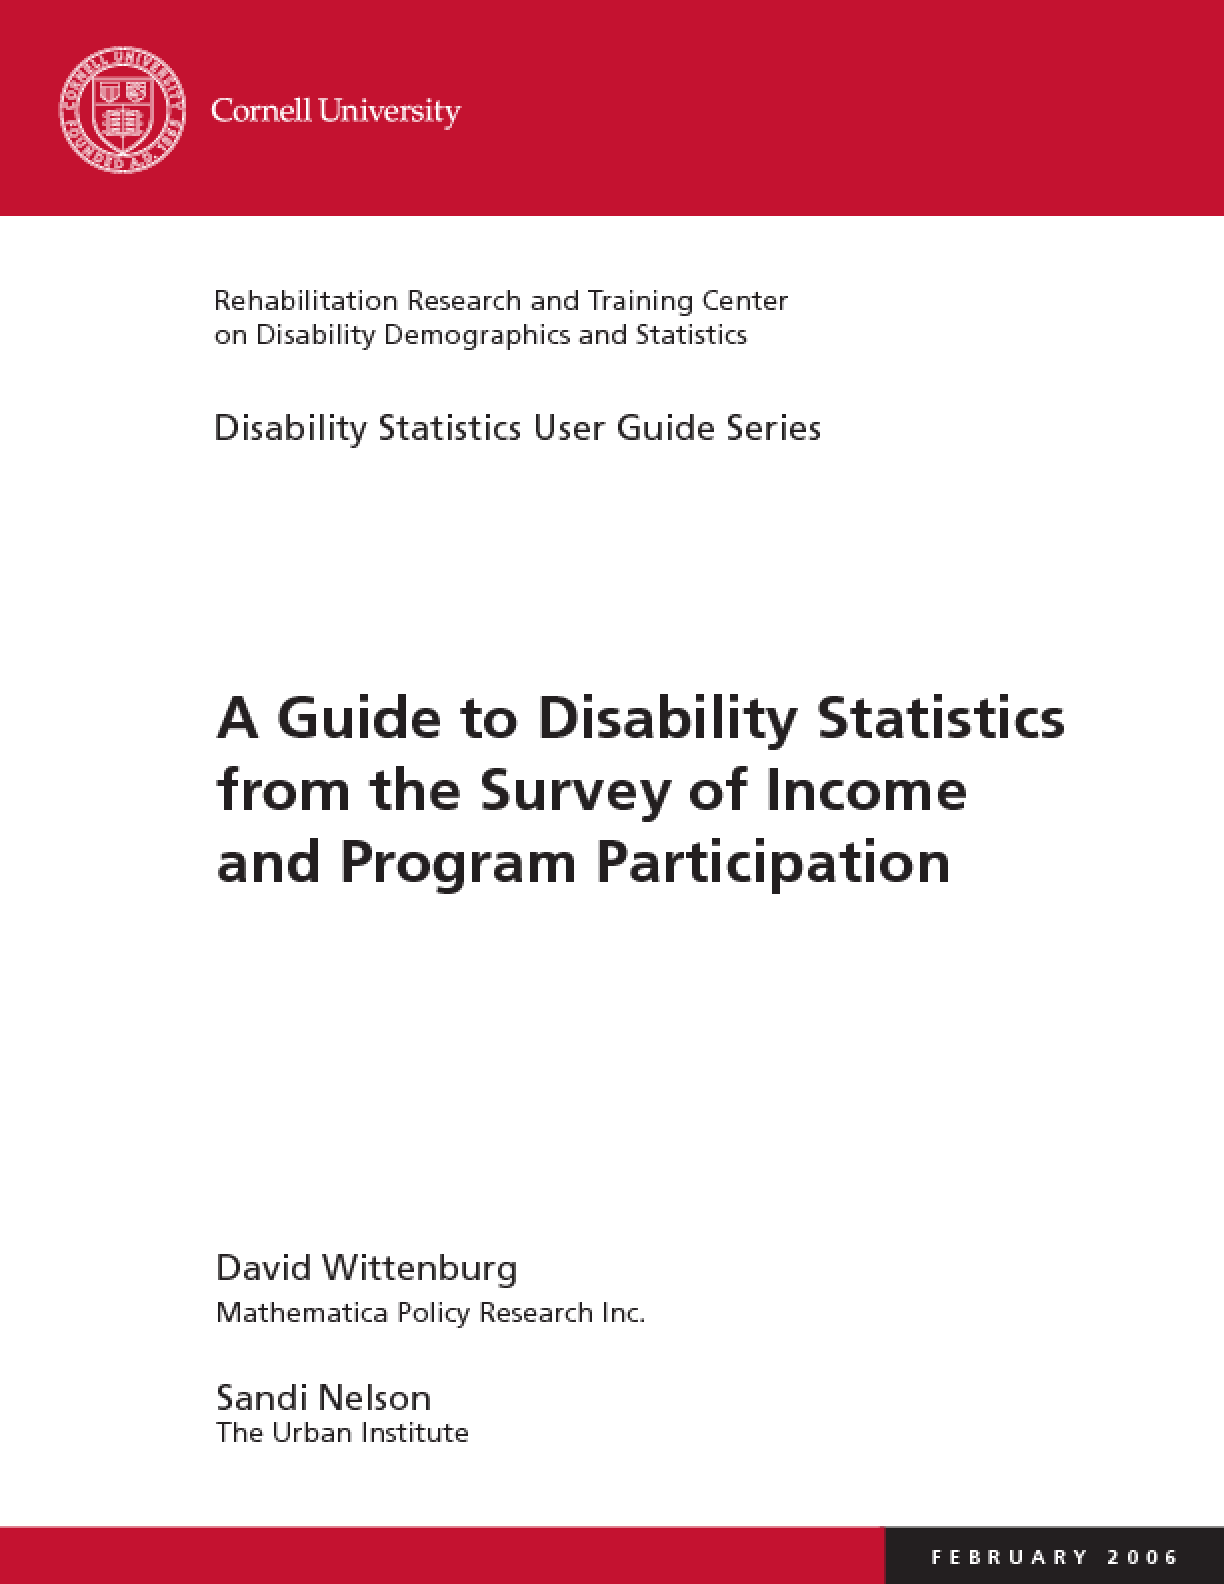 A Guide to Disability Statistics from the Survey of Income and Program Participation